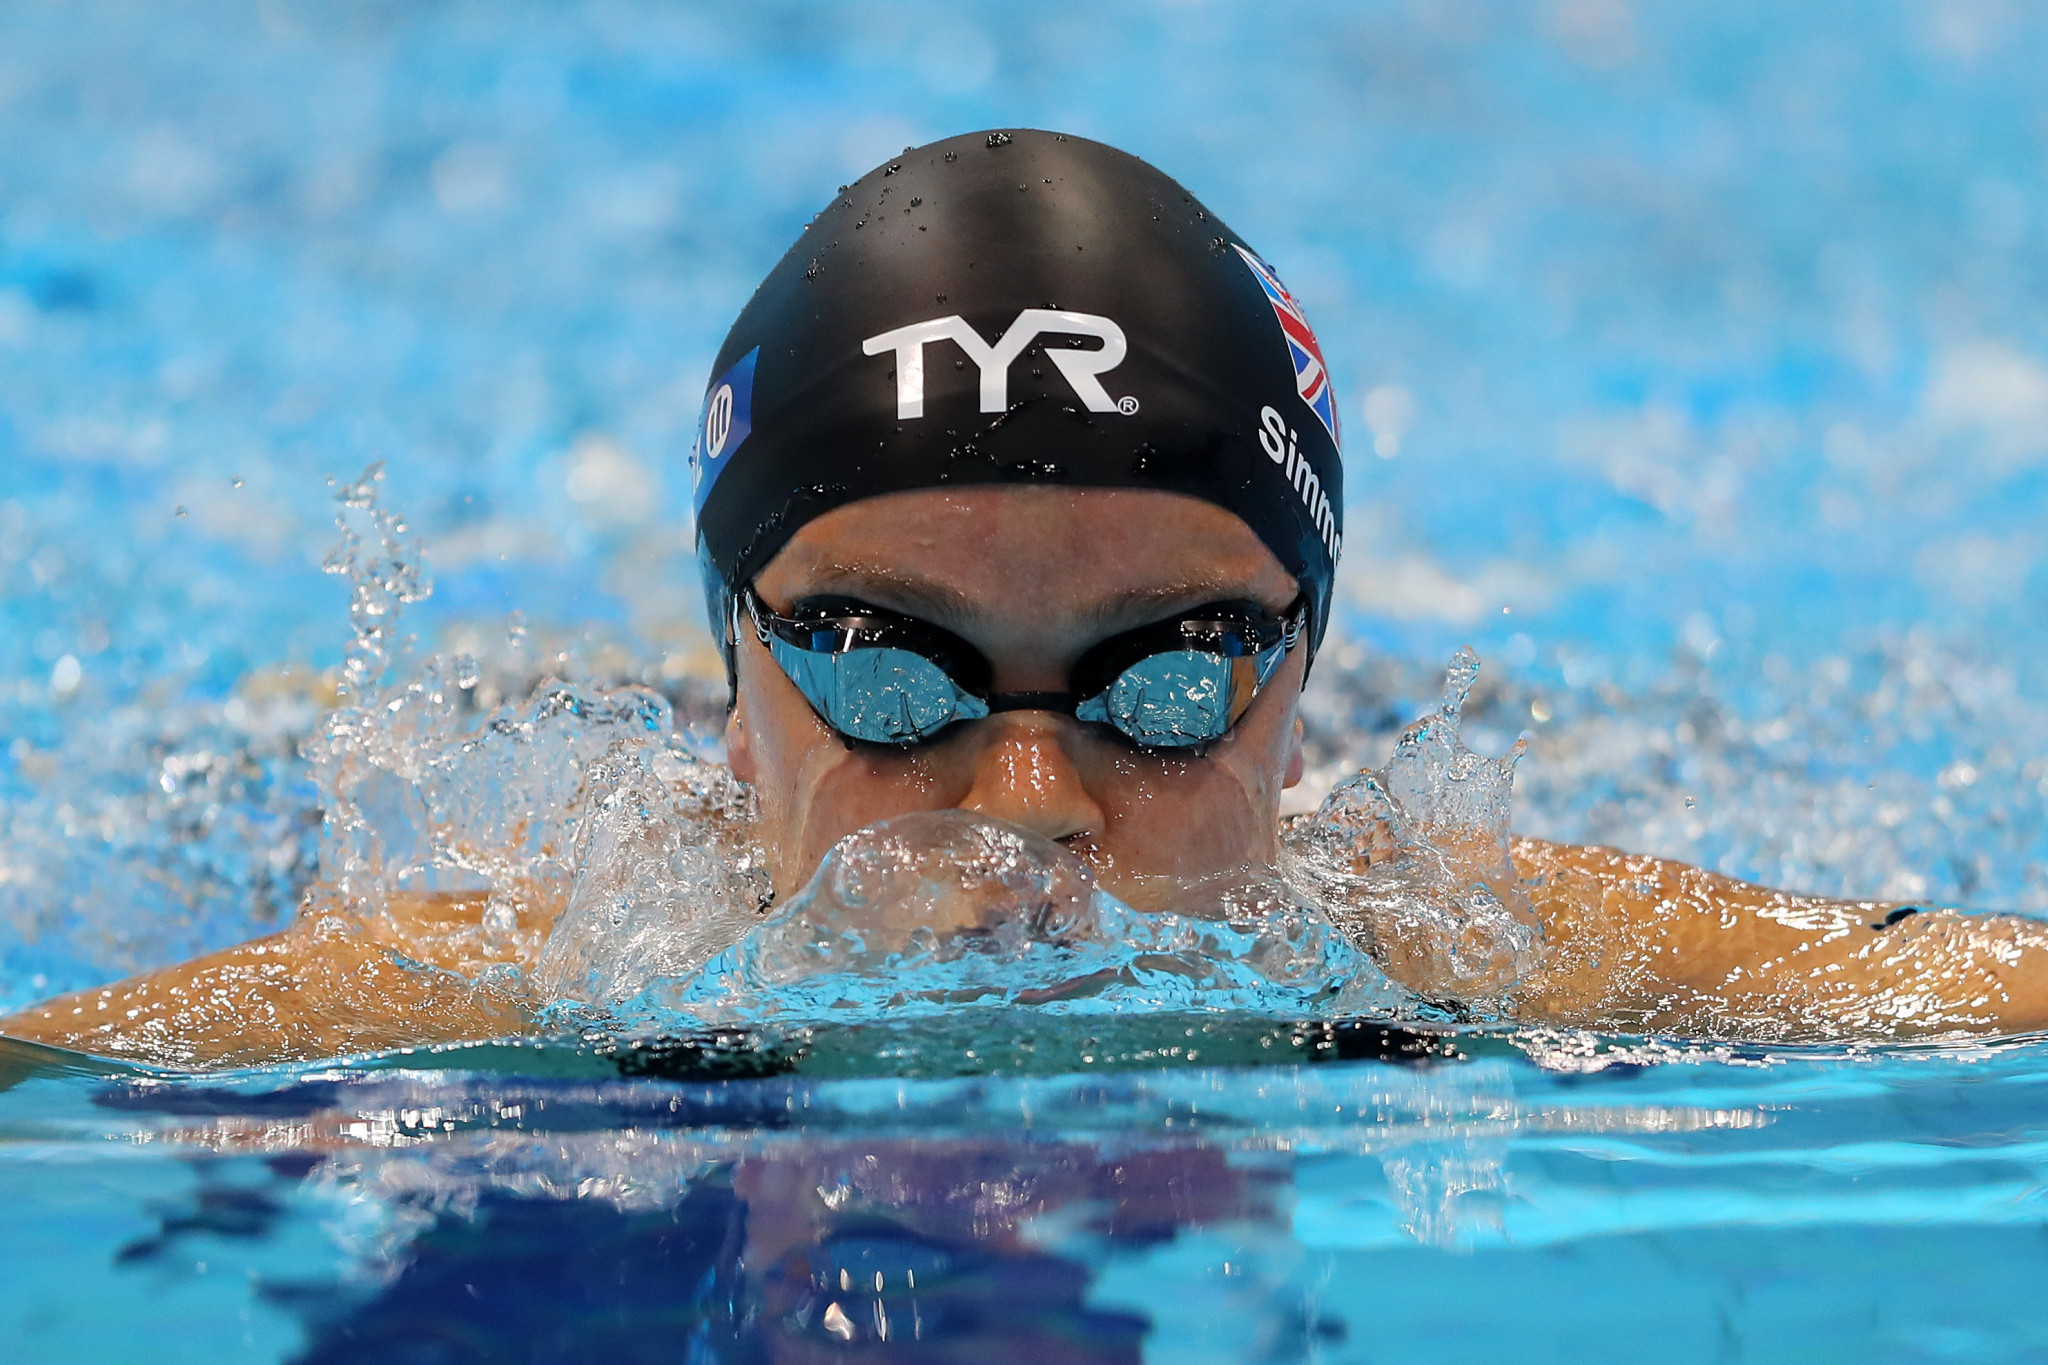 Simmonds and Moleman among winners at Sheffield World Para Swimming World Series leg